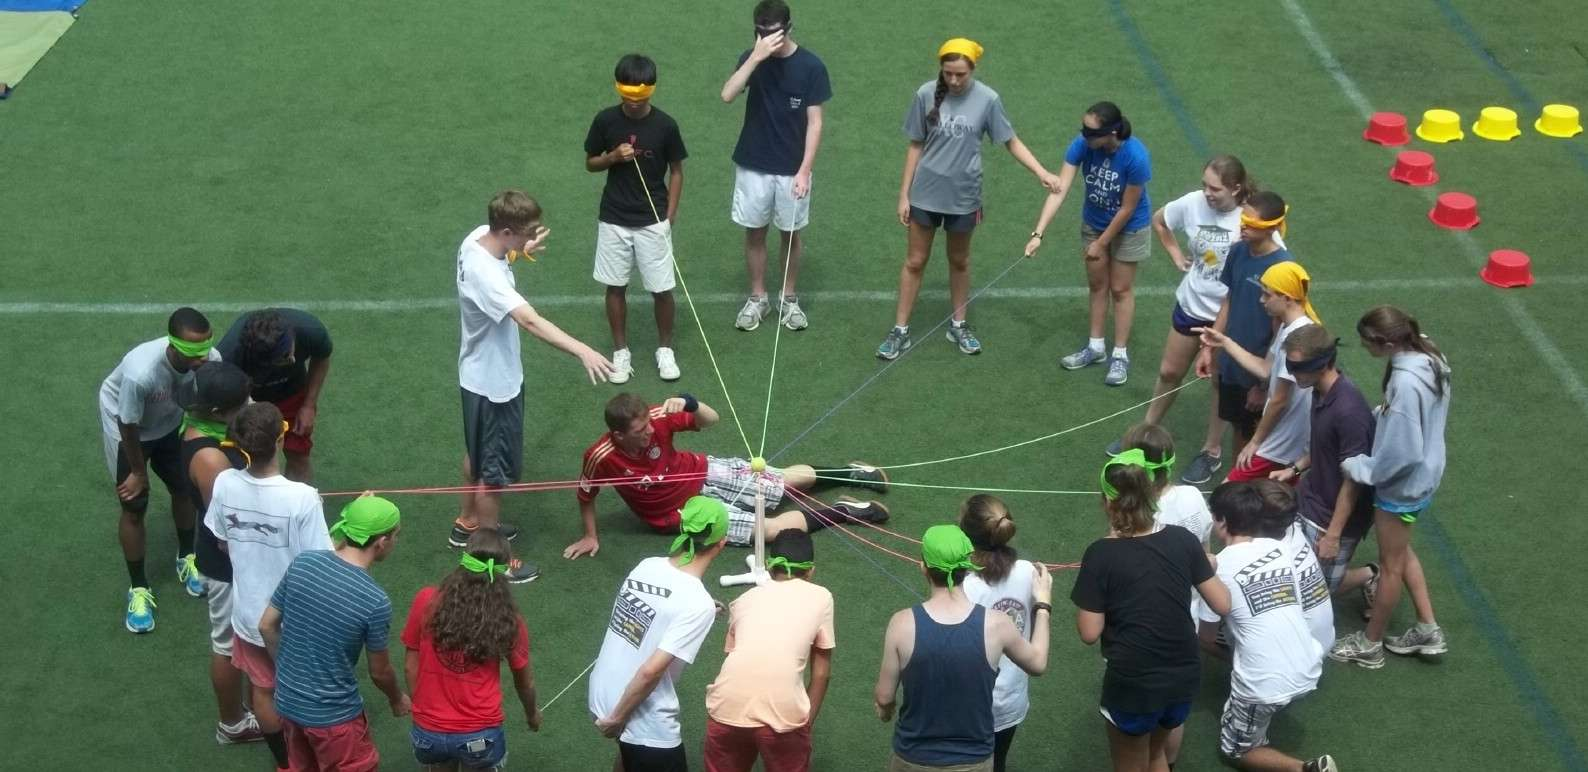 Juggernaut student team building program-comunication activity with ropes